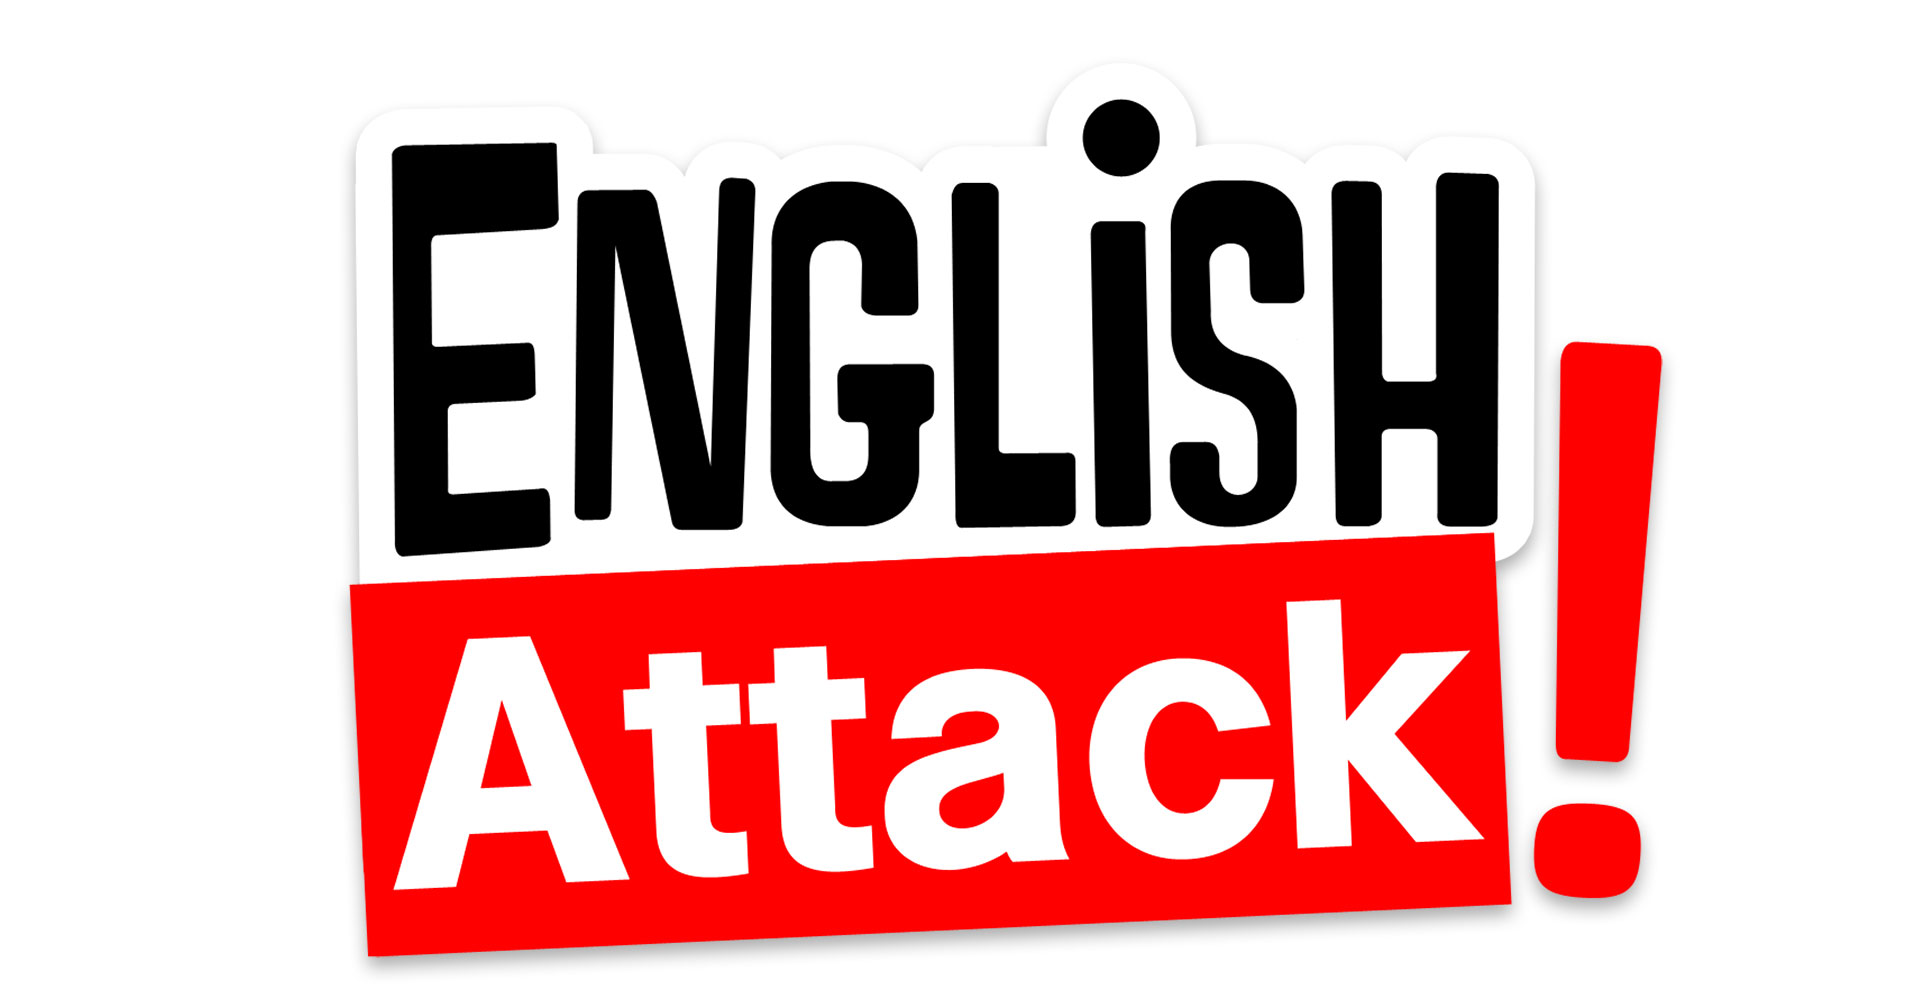 english subject logo clipart panda free clipart images